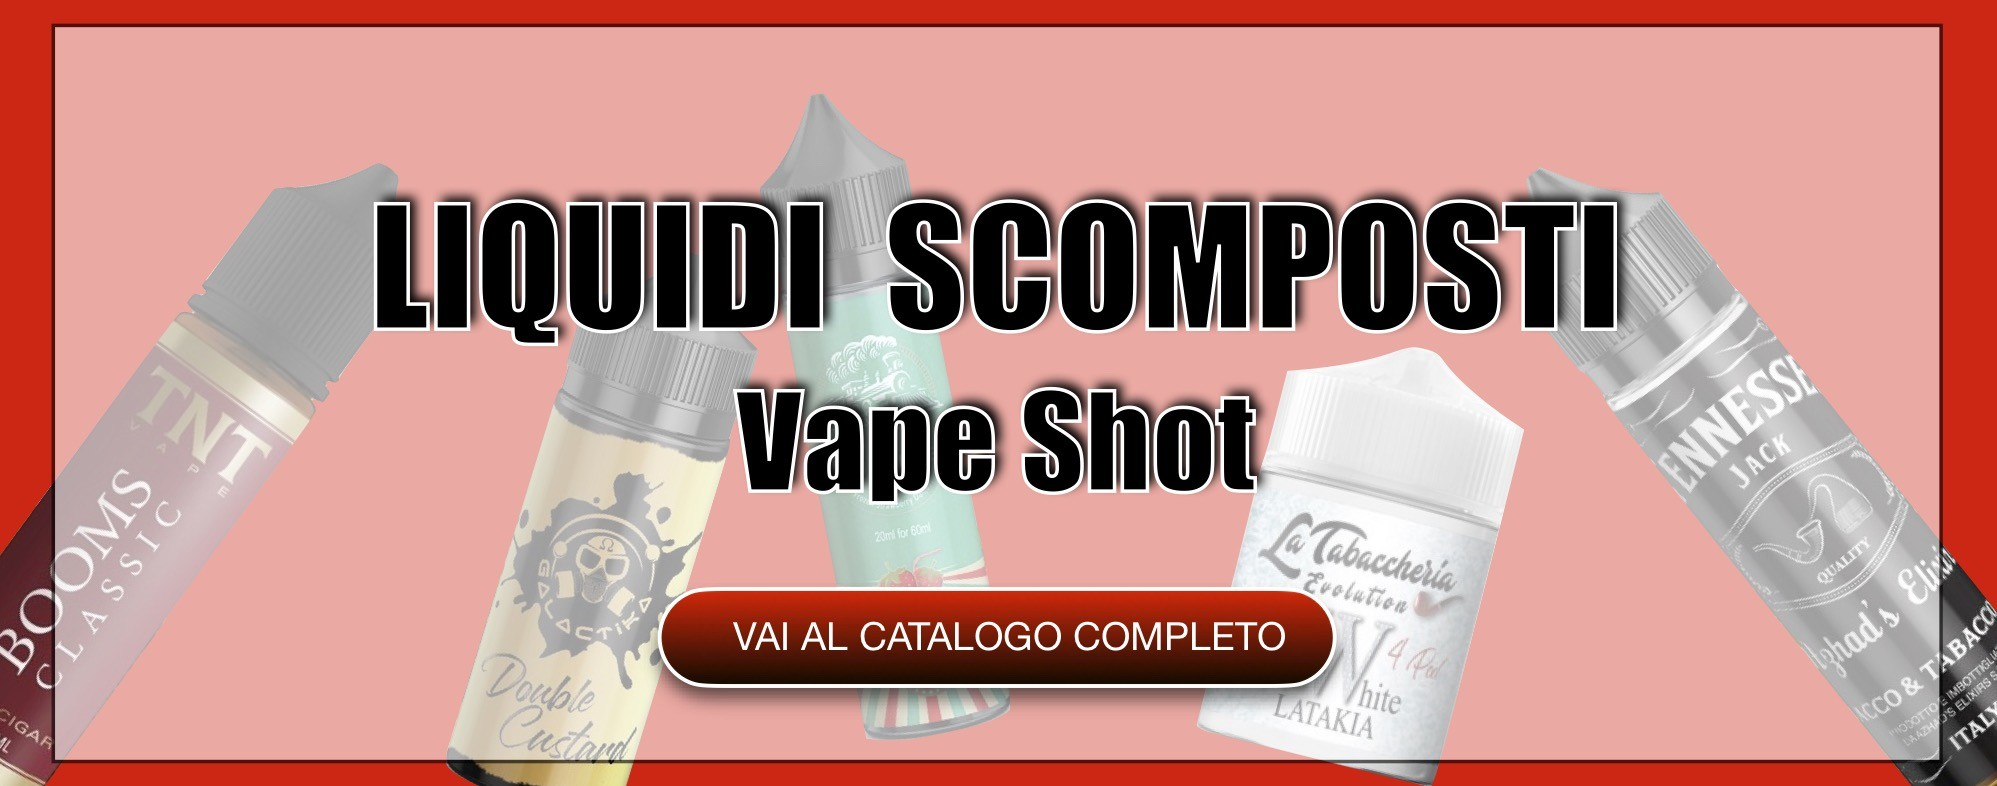 LIQUID SCOMPOSTI VAPE SHOT